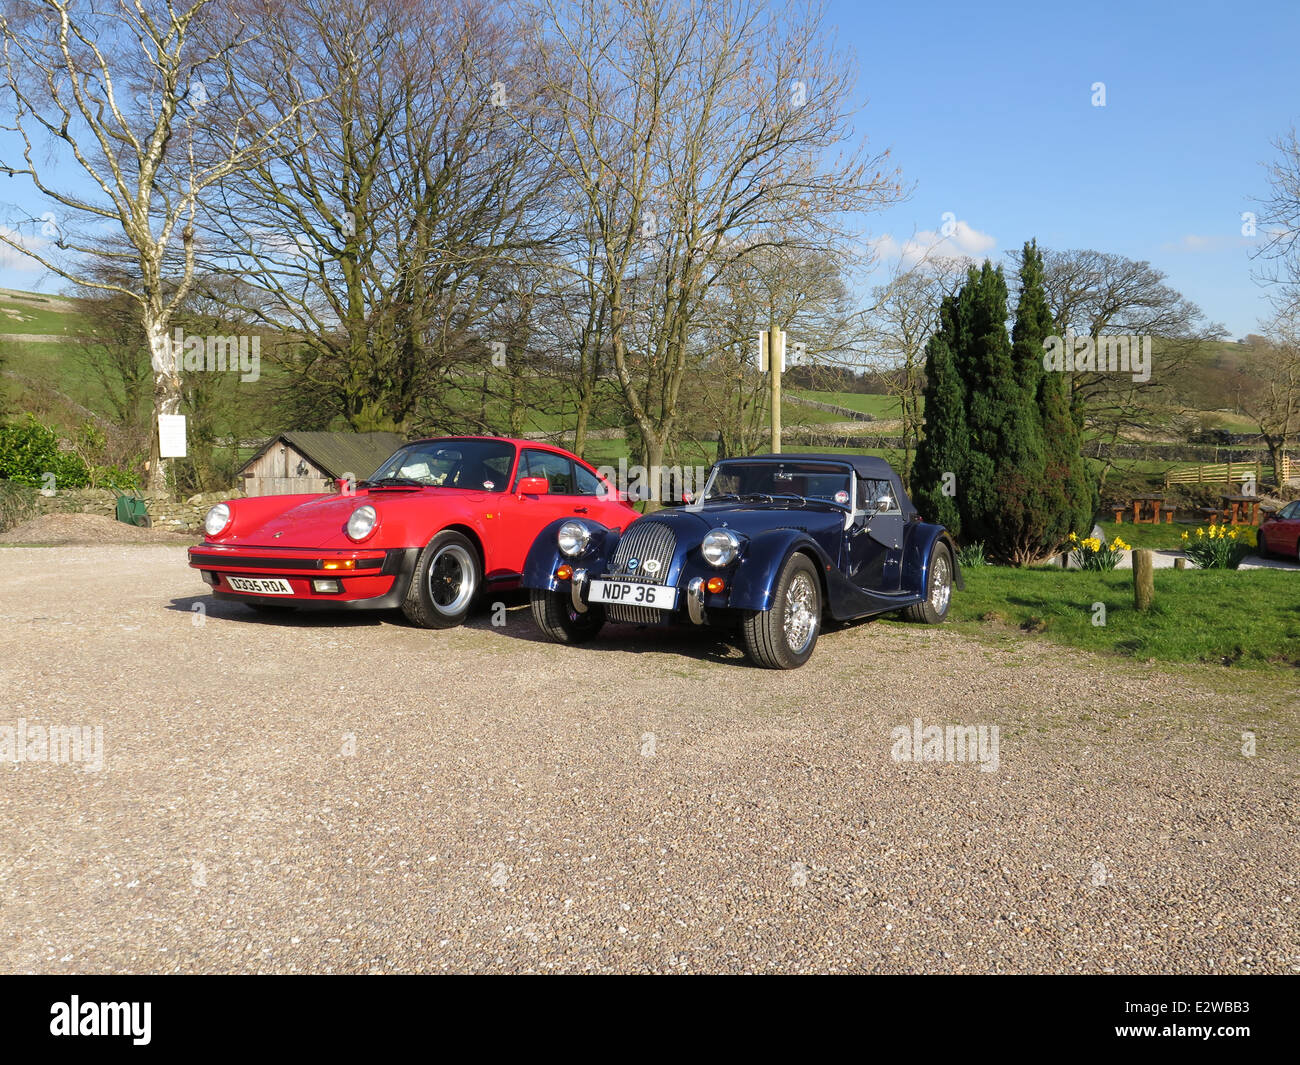 Porsche Morgan Roadster Classic Cars In The Yorkshire